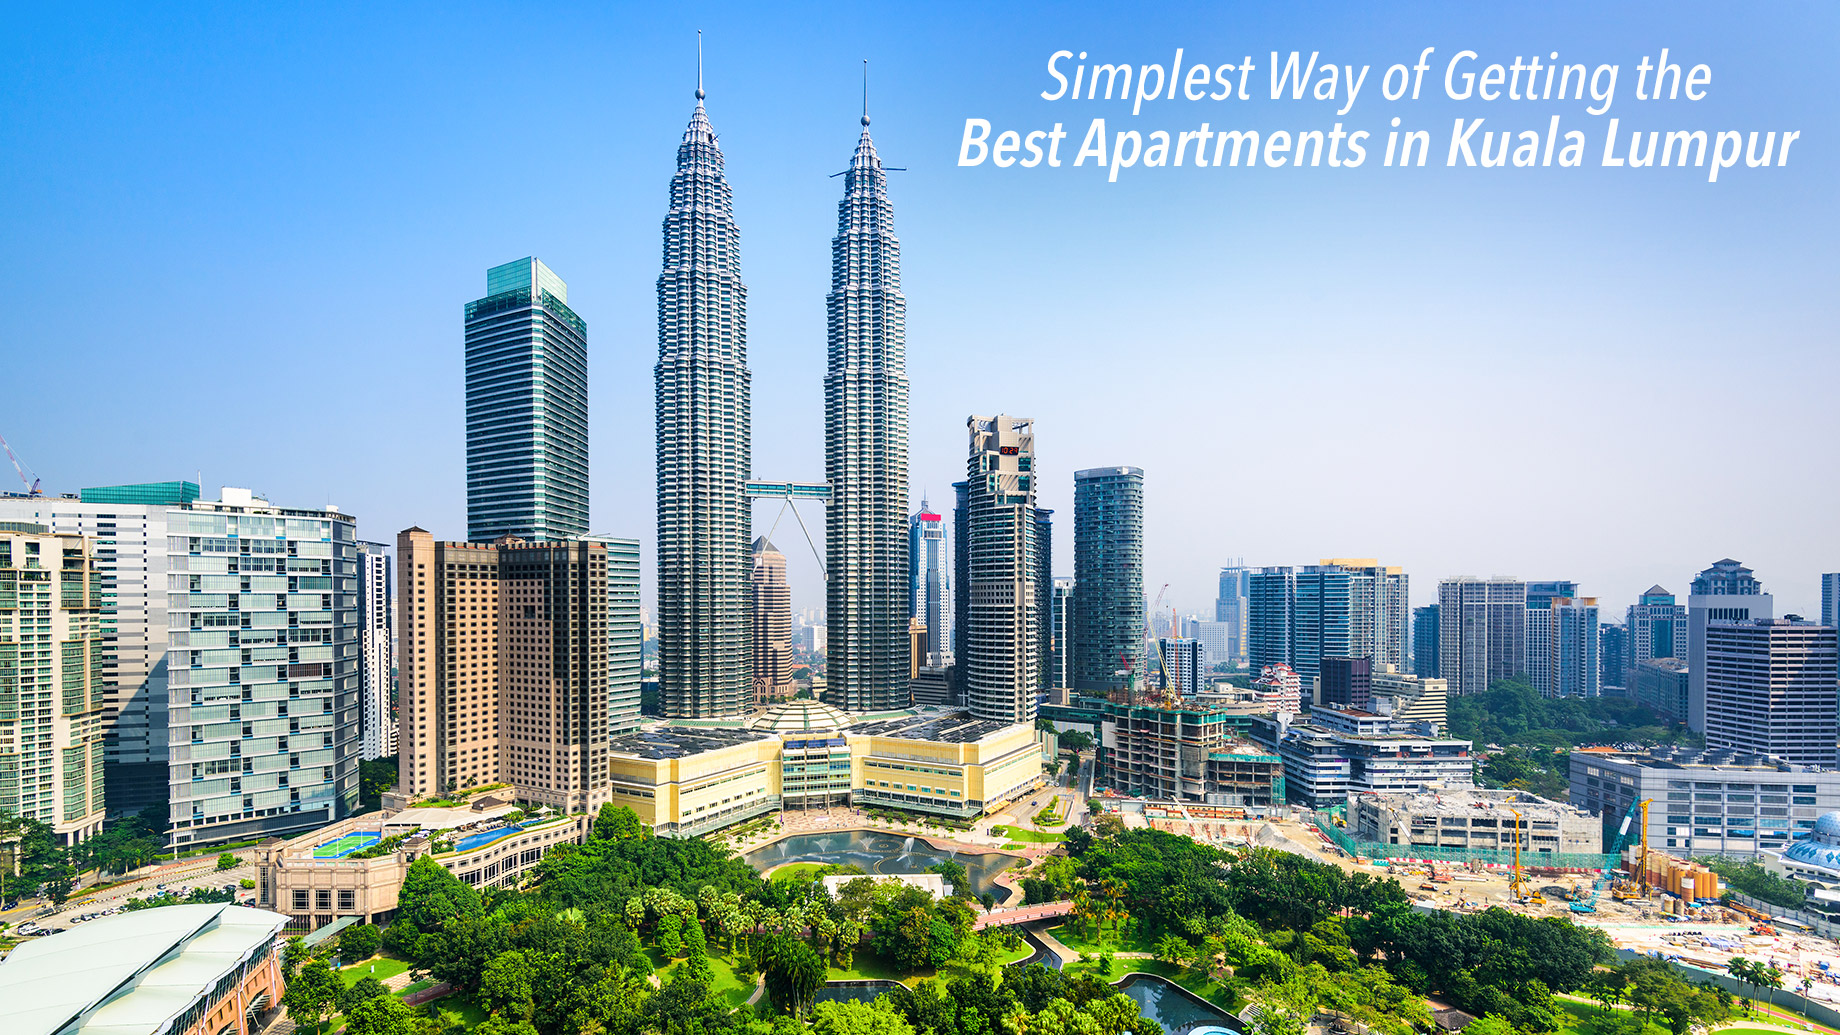 Simplest Way of Getting the Best Apartments in Kuala Lumpur